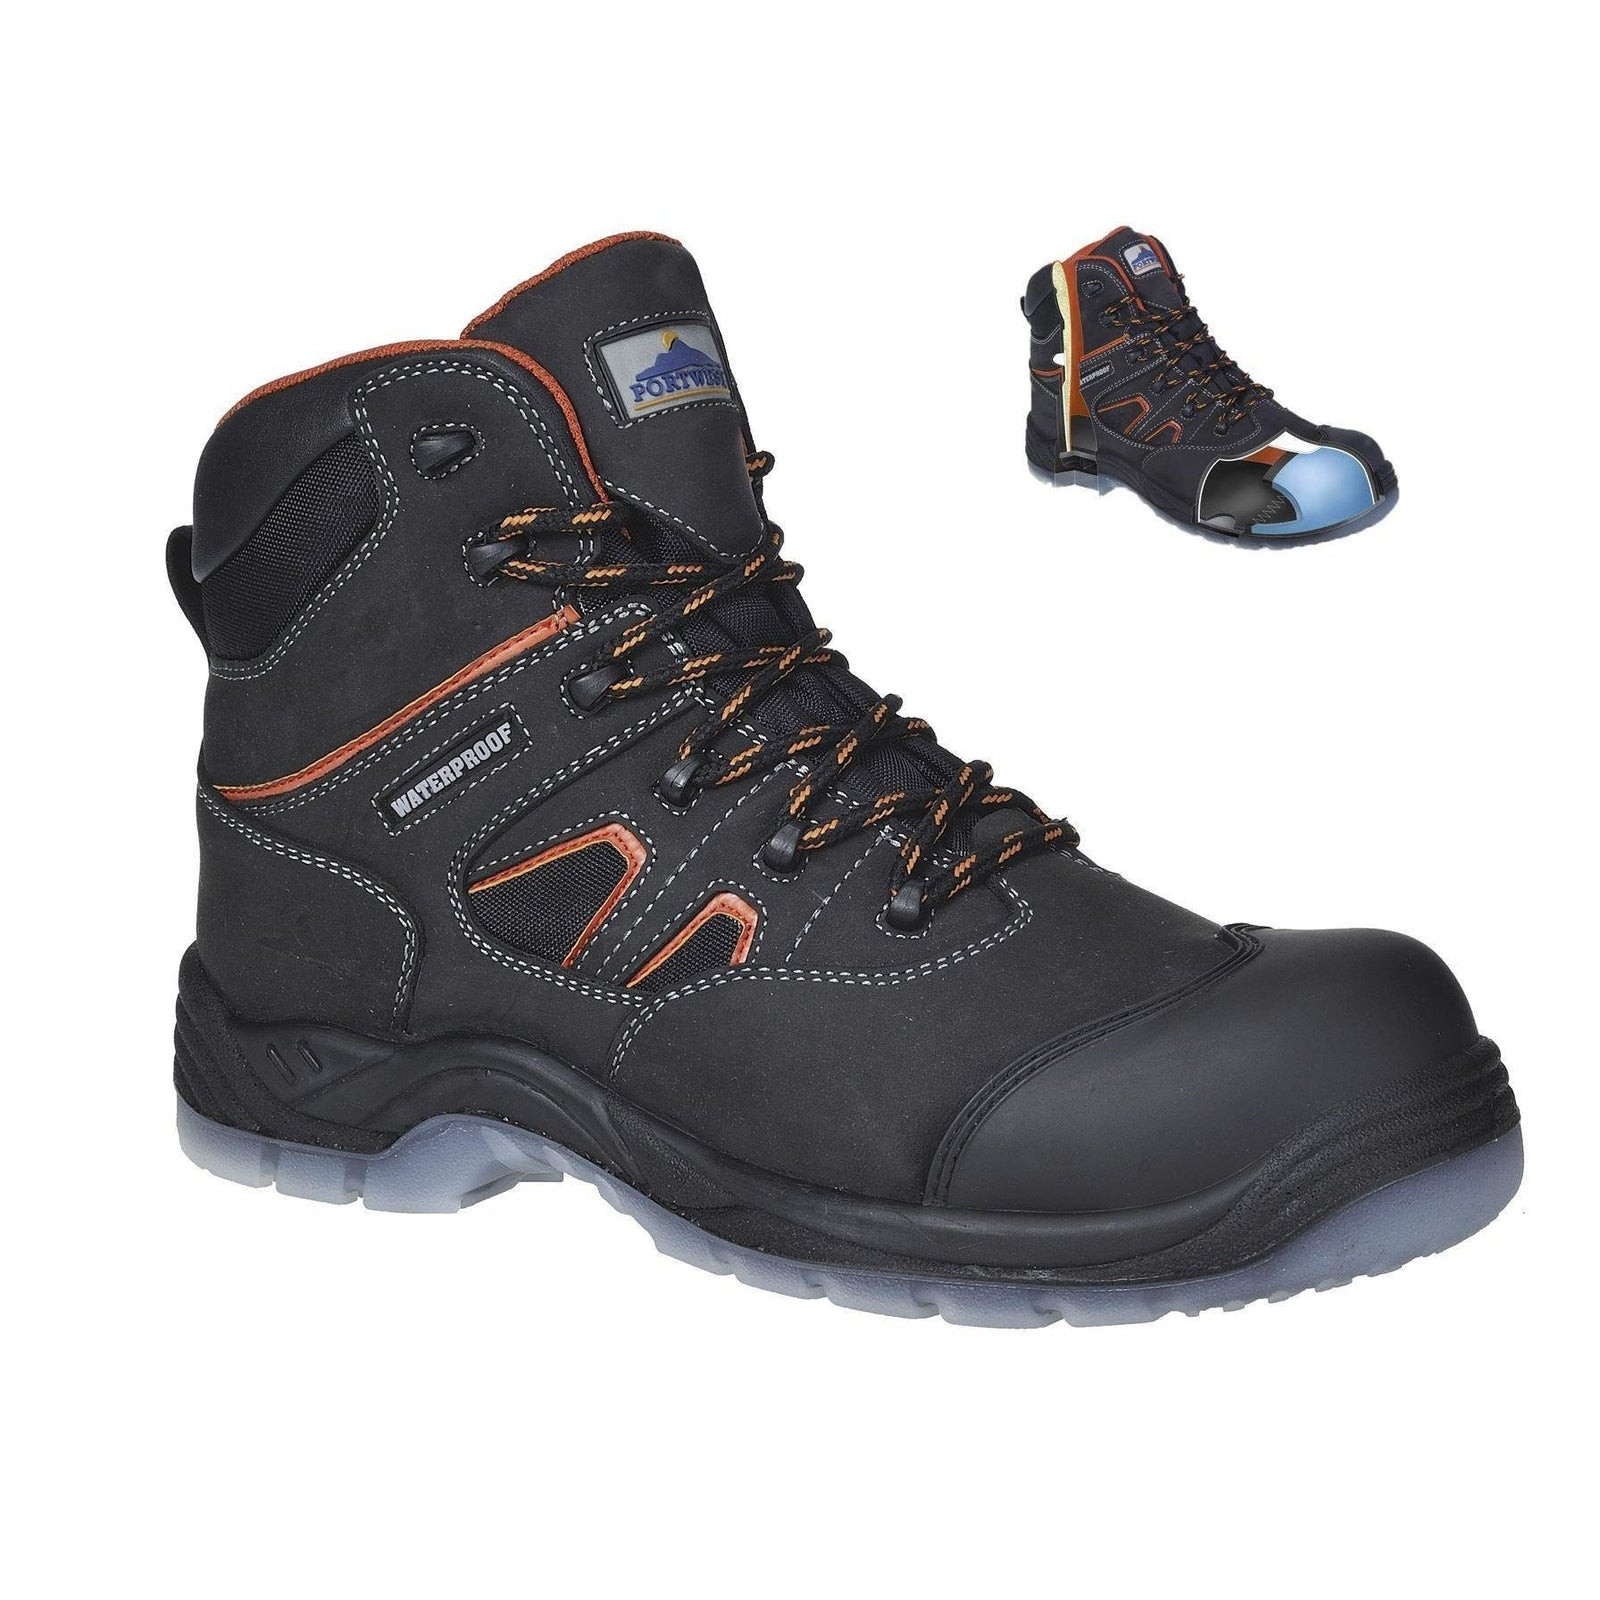 Portwest Compositelite All Weather Boot S3 WR FC57 - reid outdoors